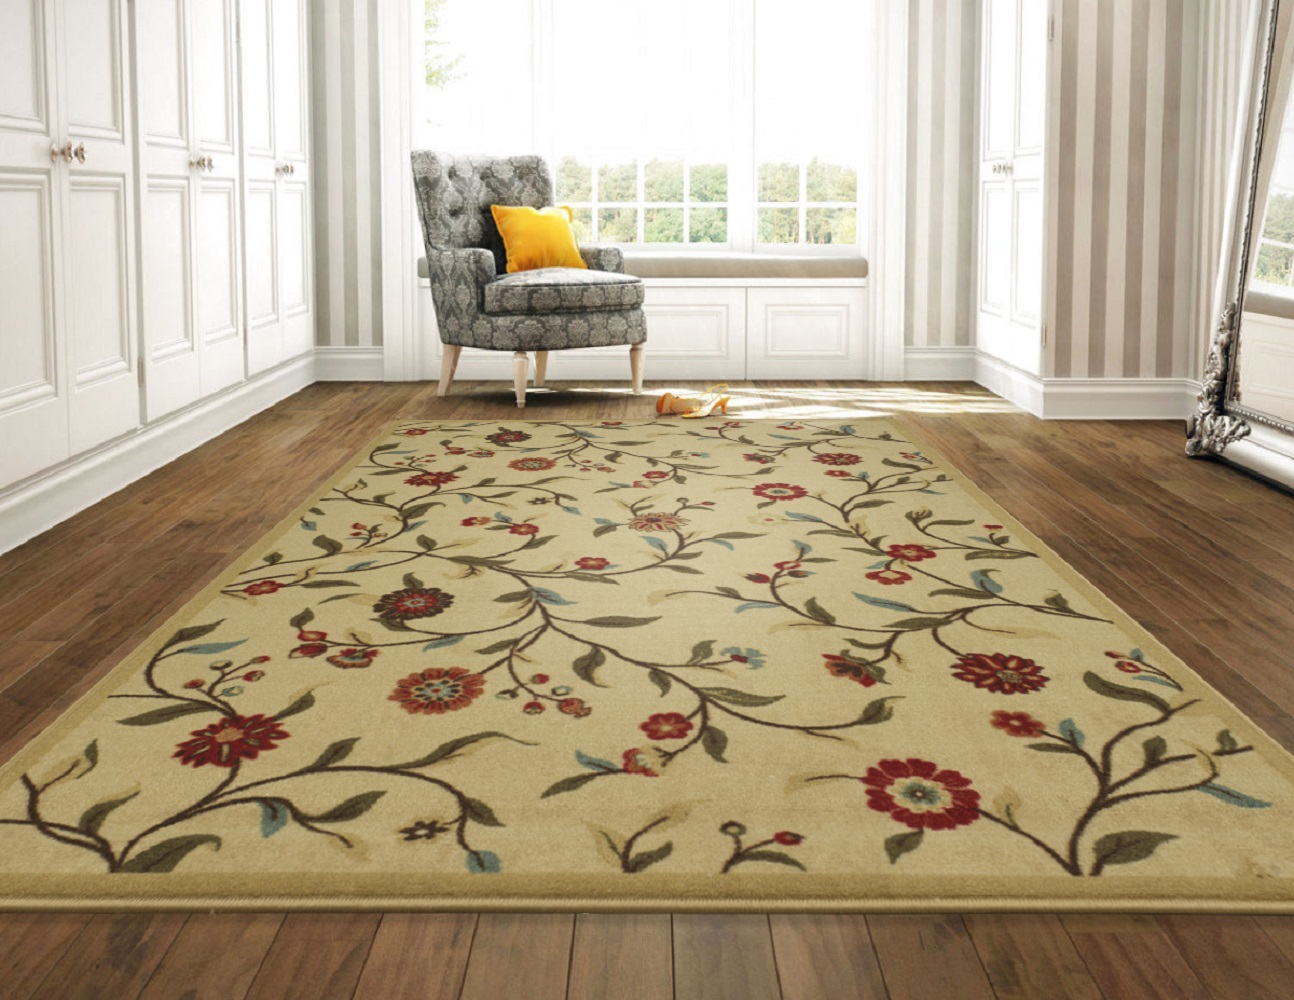 Ottomanson Ottohome Collection Floral Garden Design Modern Area Rugs and Runners with... by Ottomanson